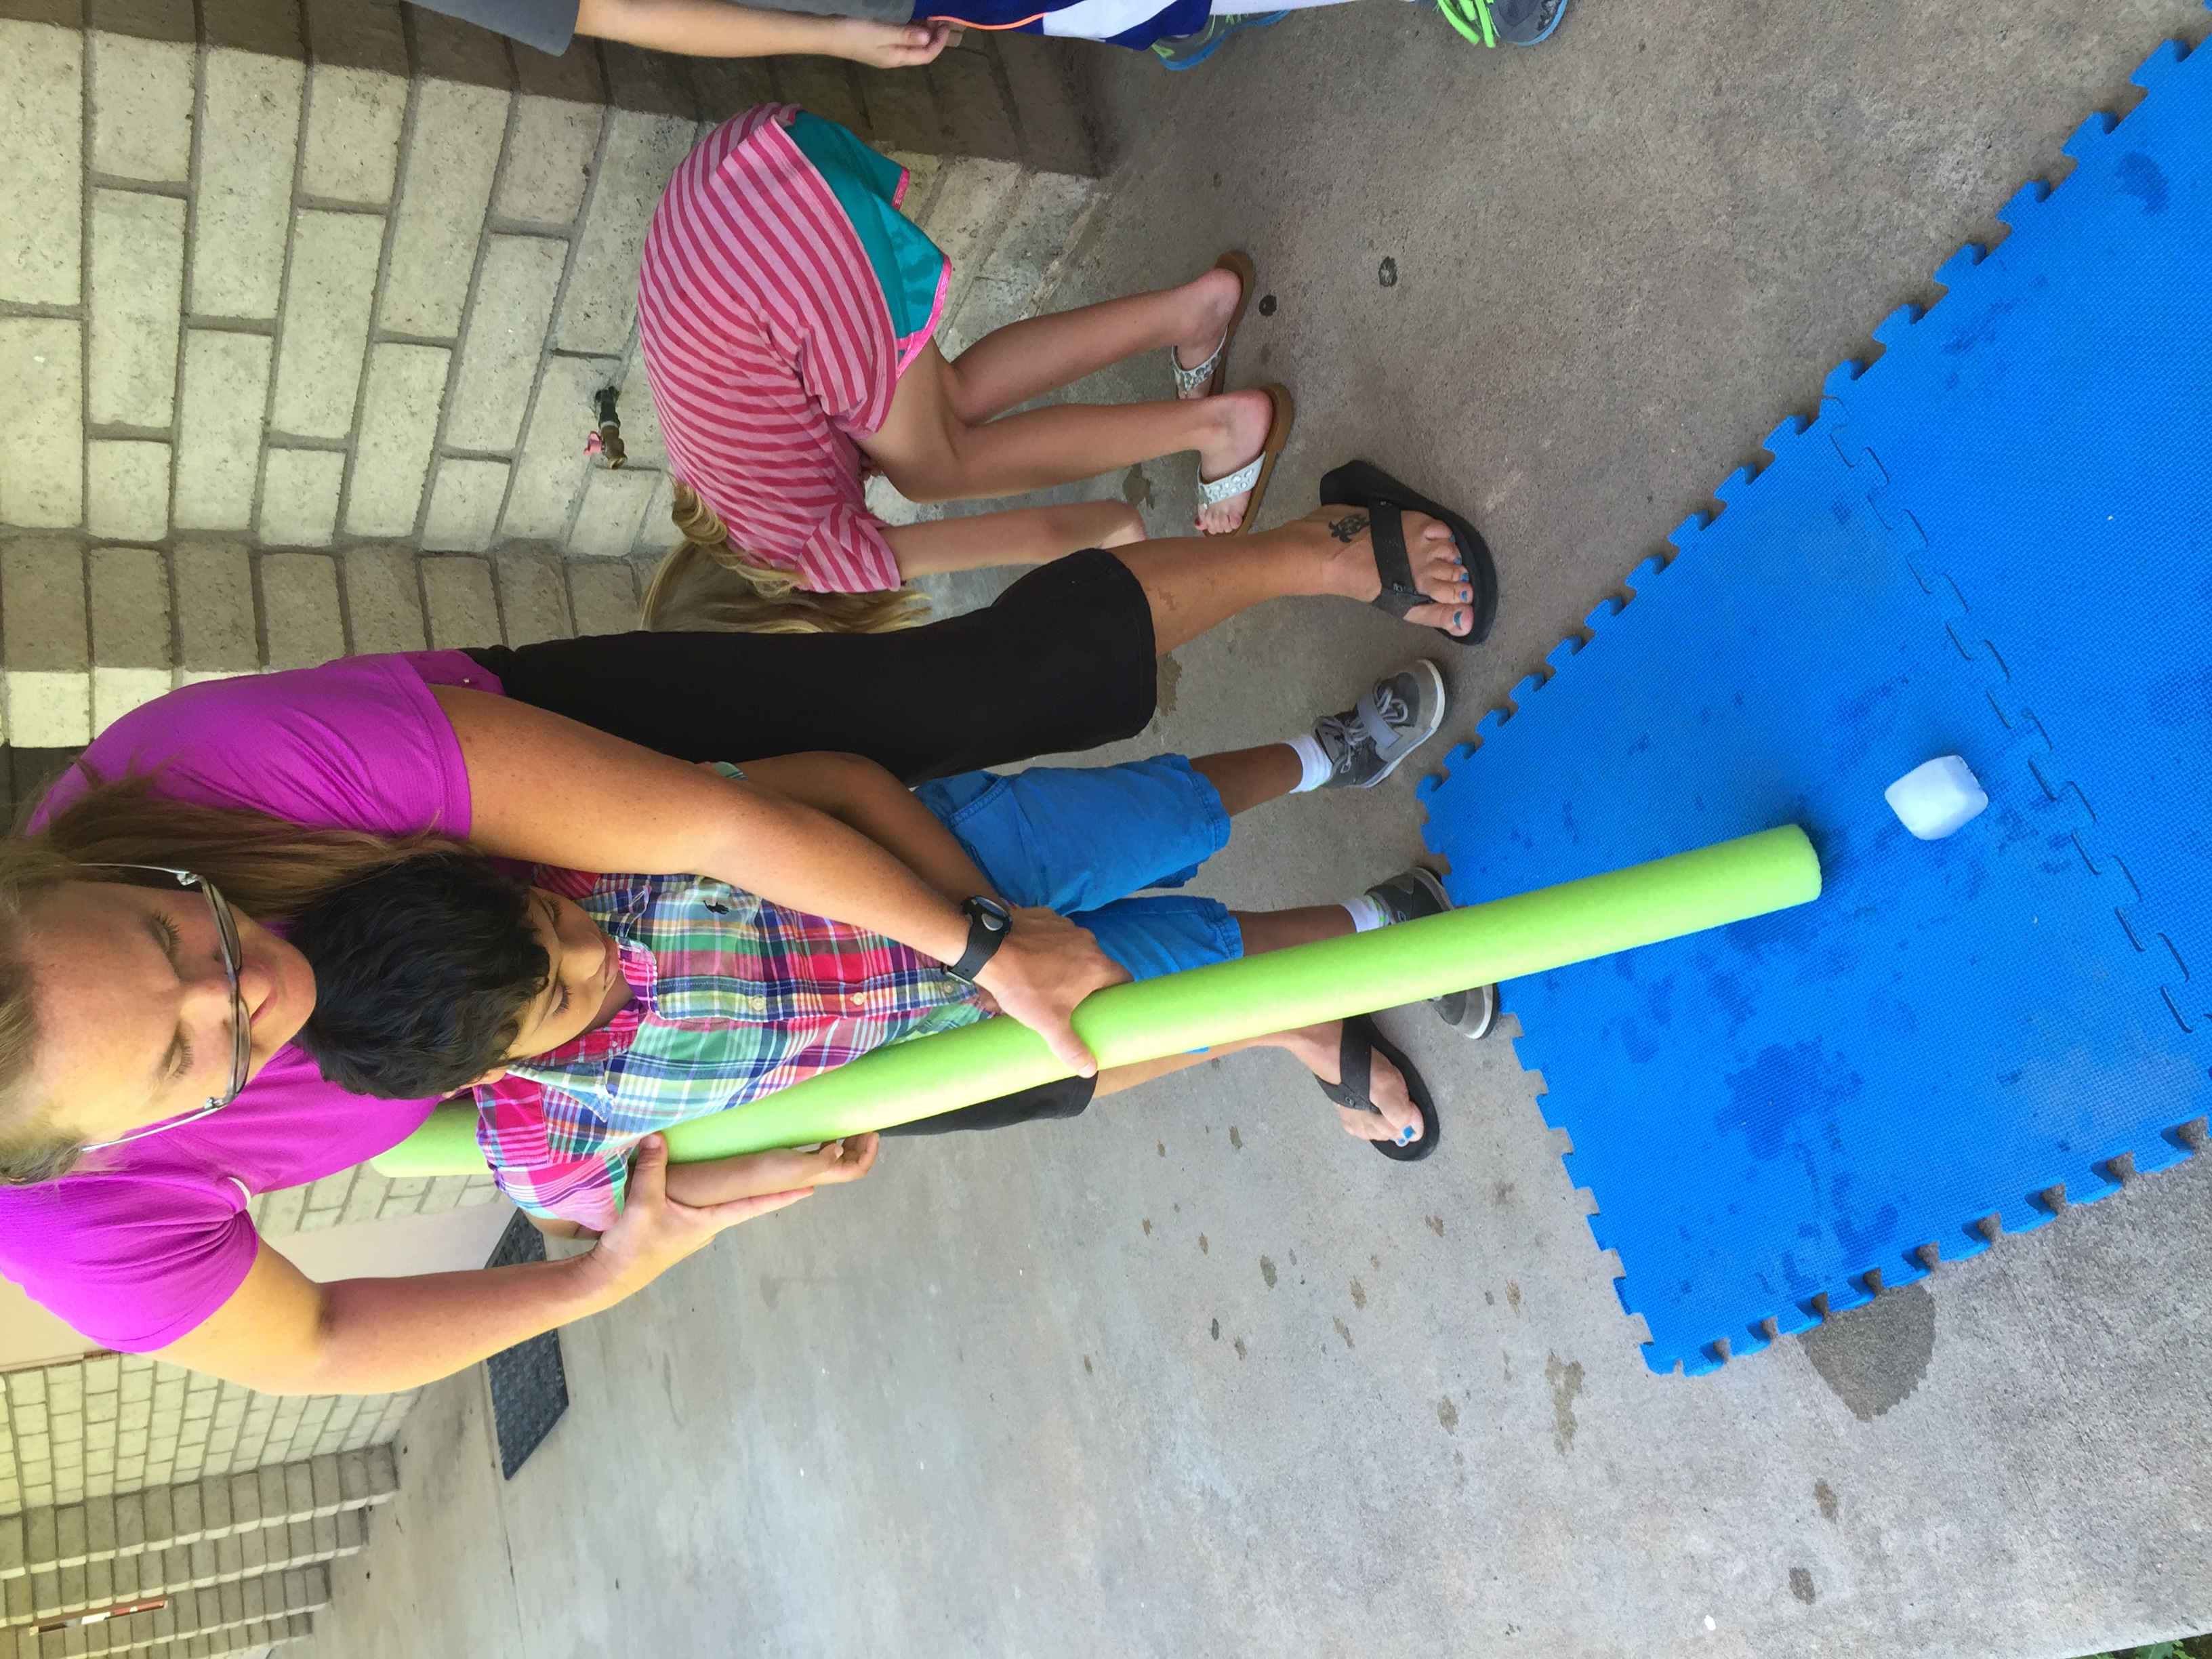 Woman helping little boy golf with pool noodle